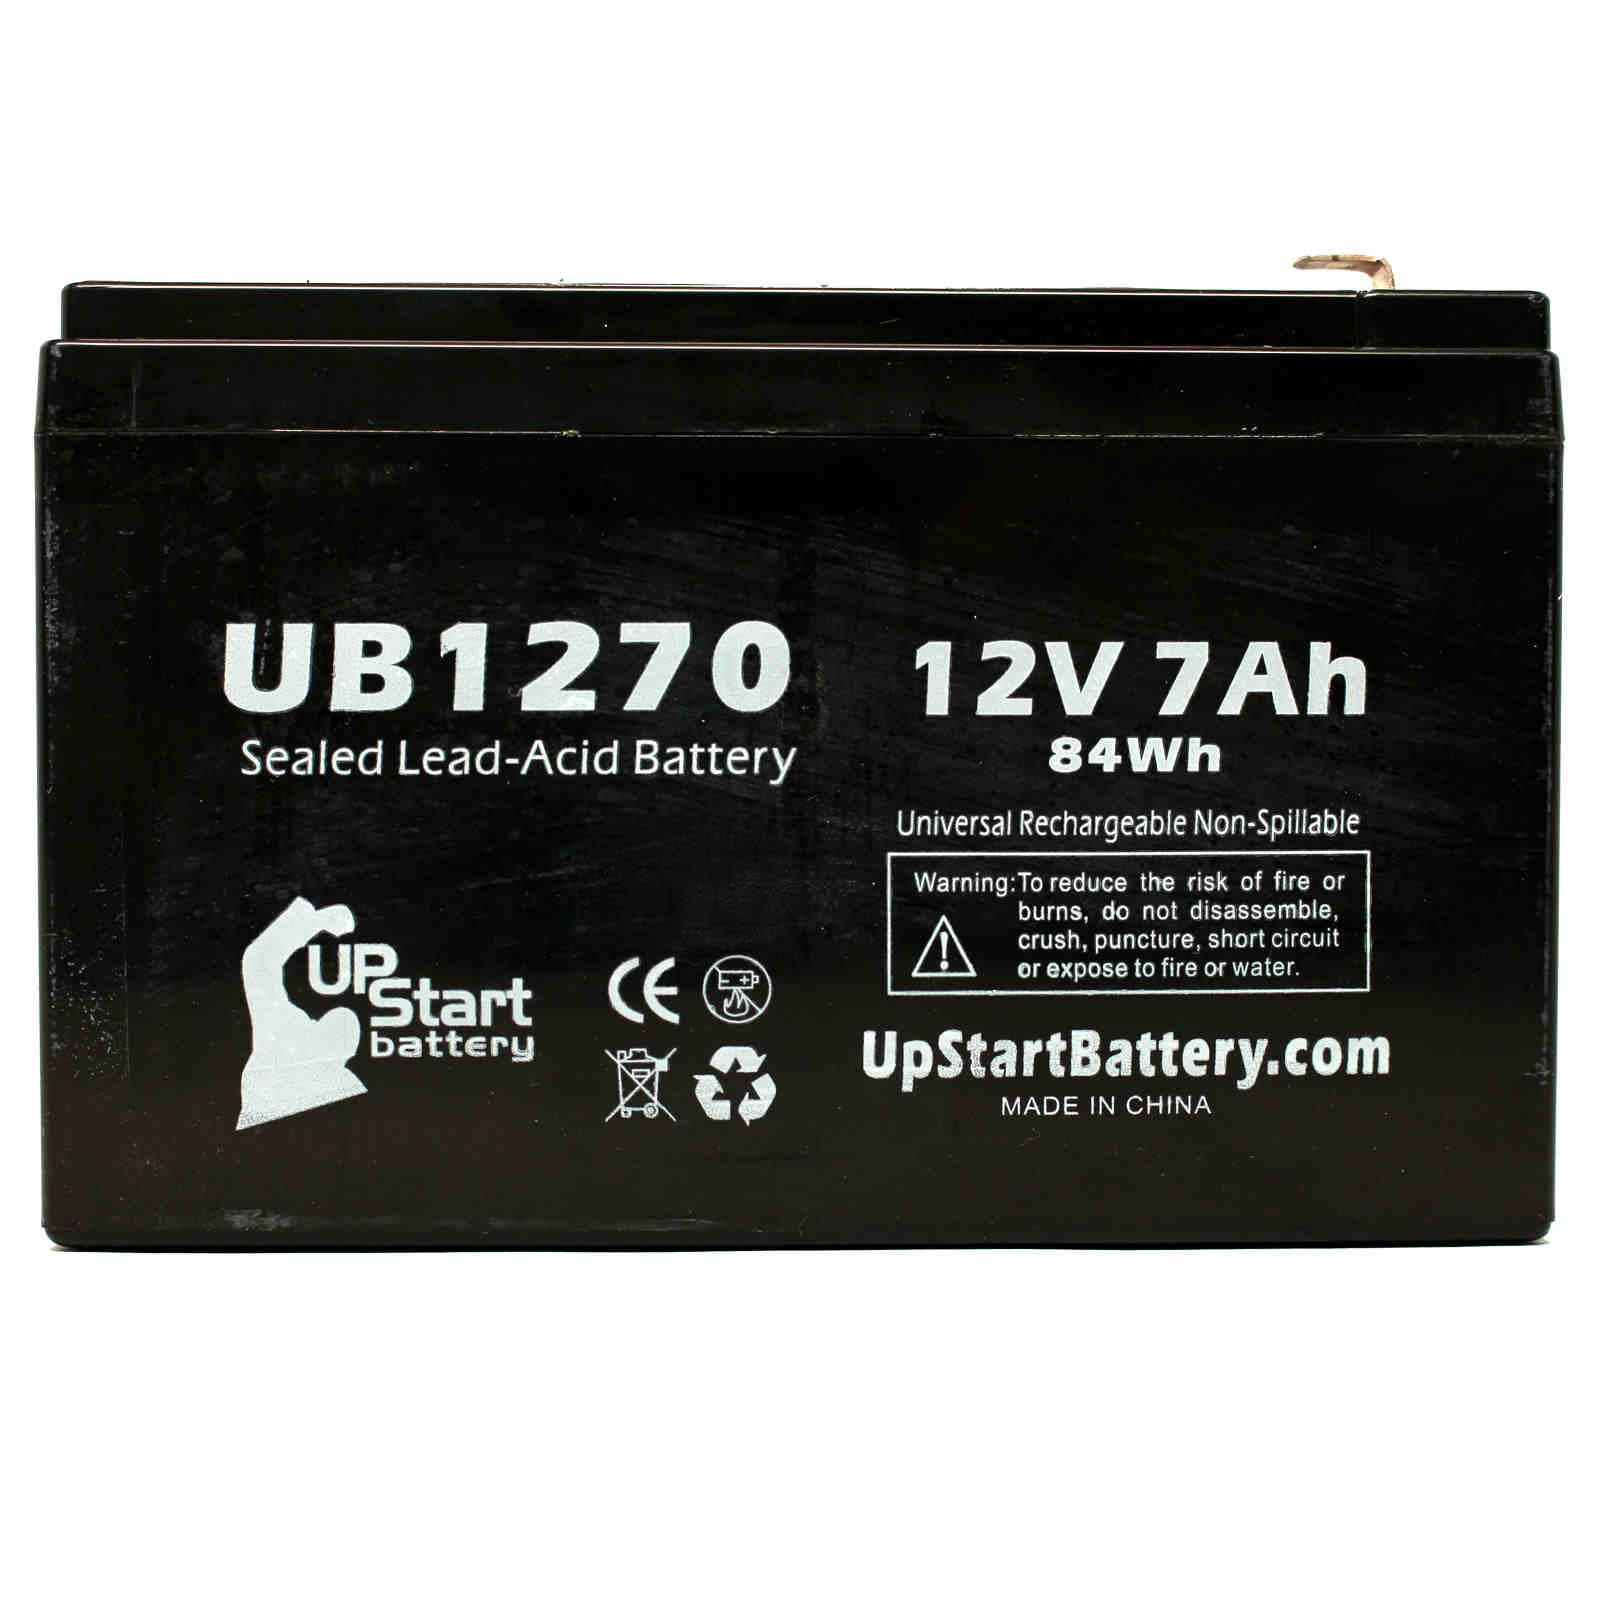 UB1270_2 cyberpower cp1500avrlcd battery ub1270 12v 7ah sealed lead acid  at reclaimingppi.co